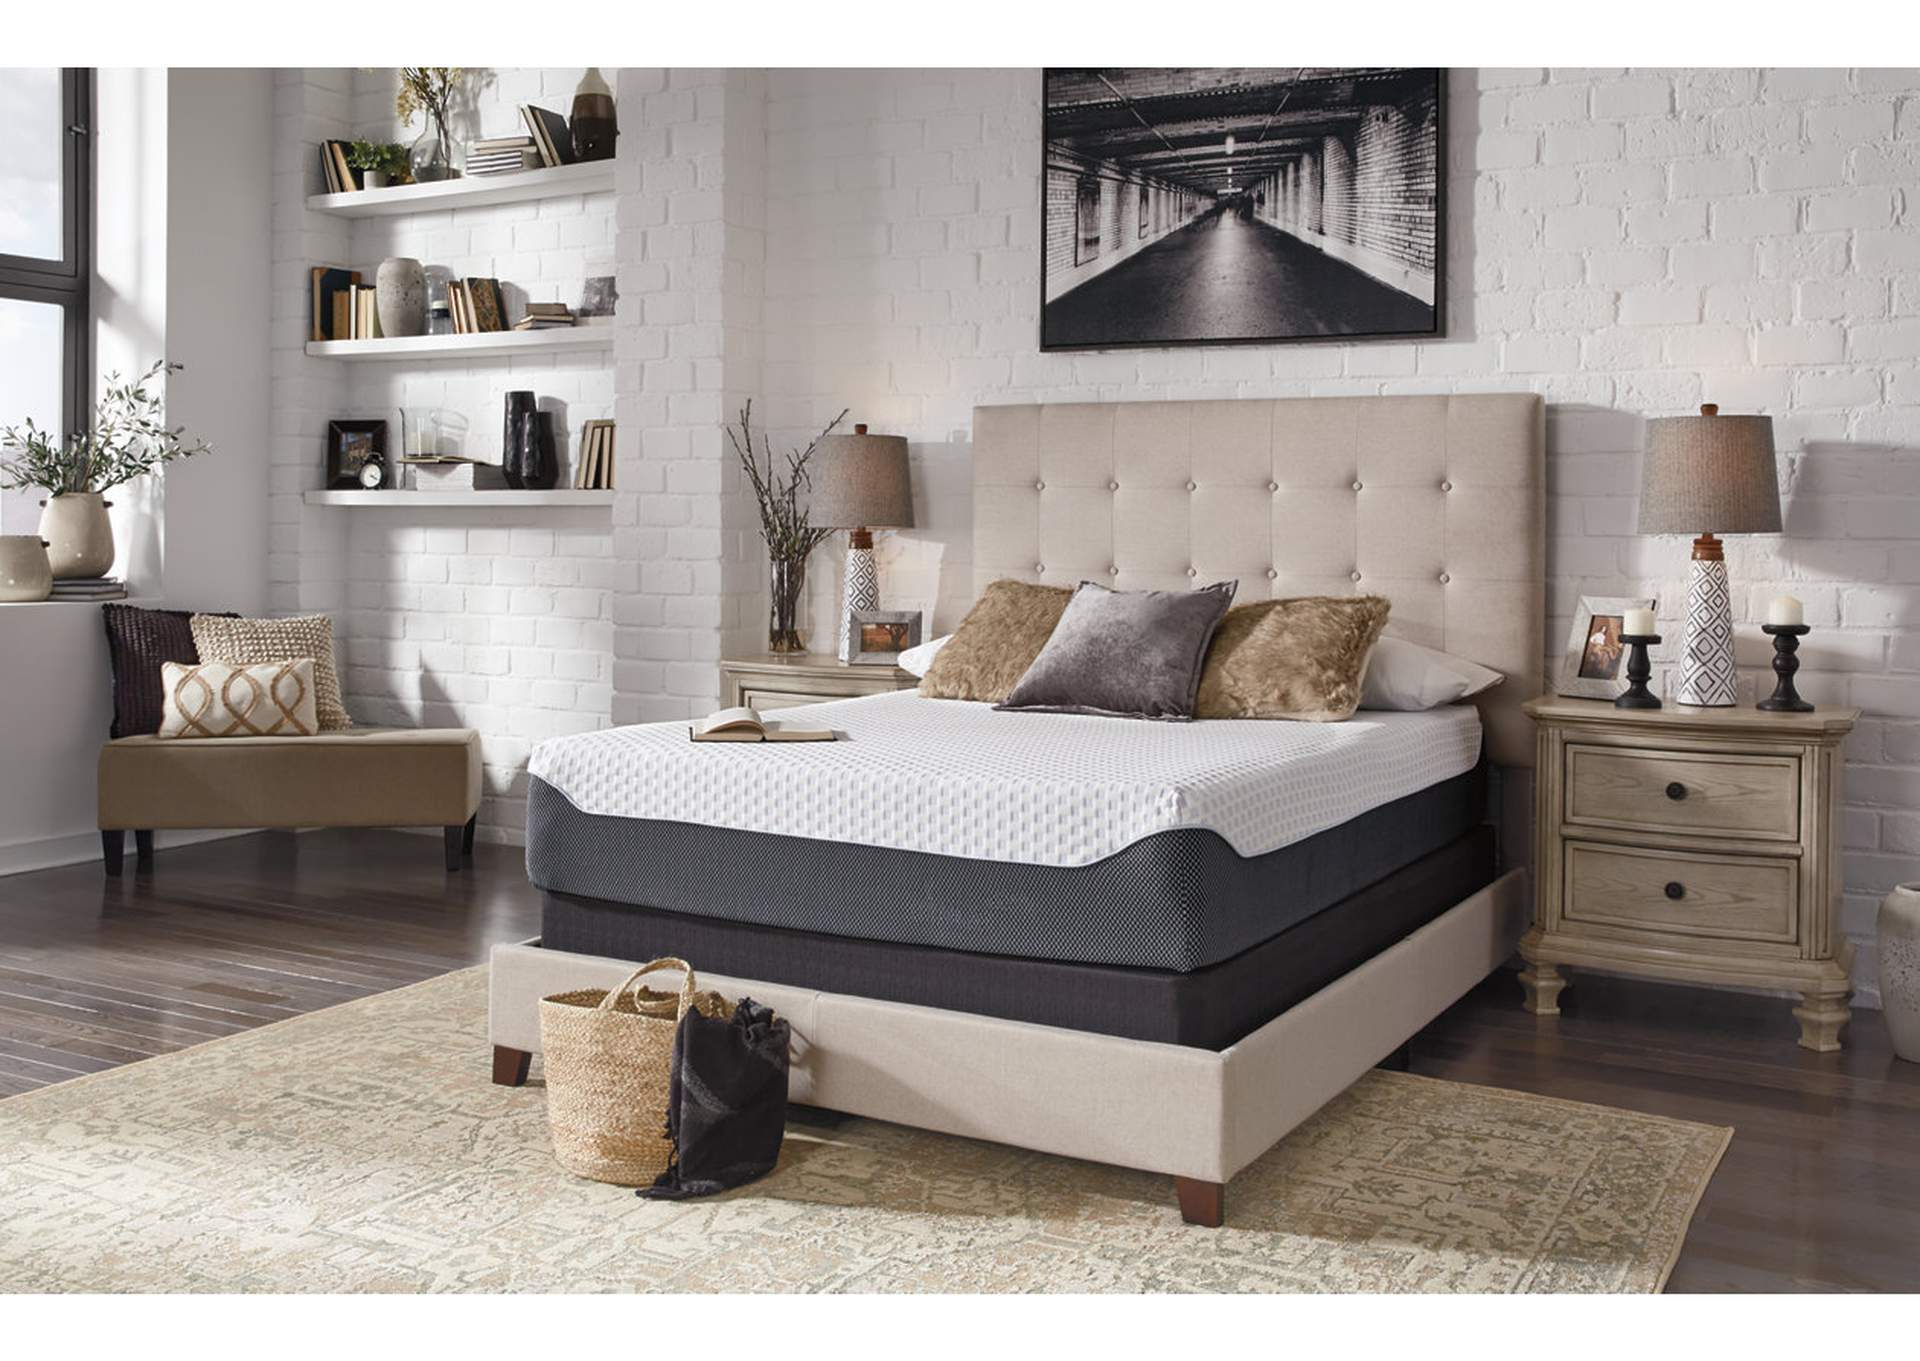 12 Inch Chime Elite Queen Memory Foam Mattress in a box w/Foundation,Sierra Sleep by Ashley